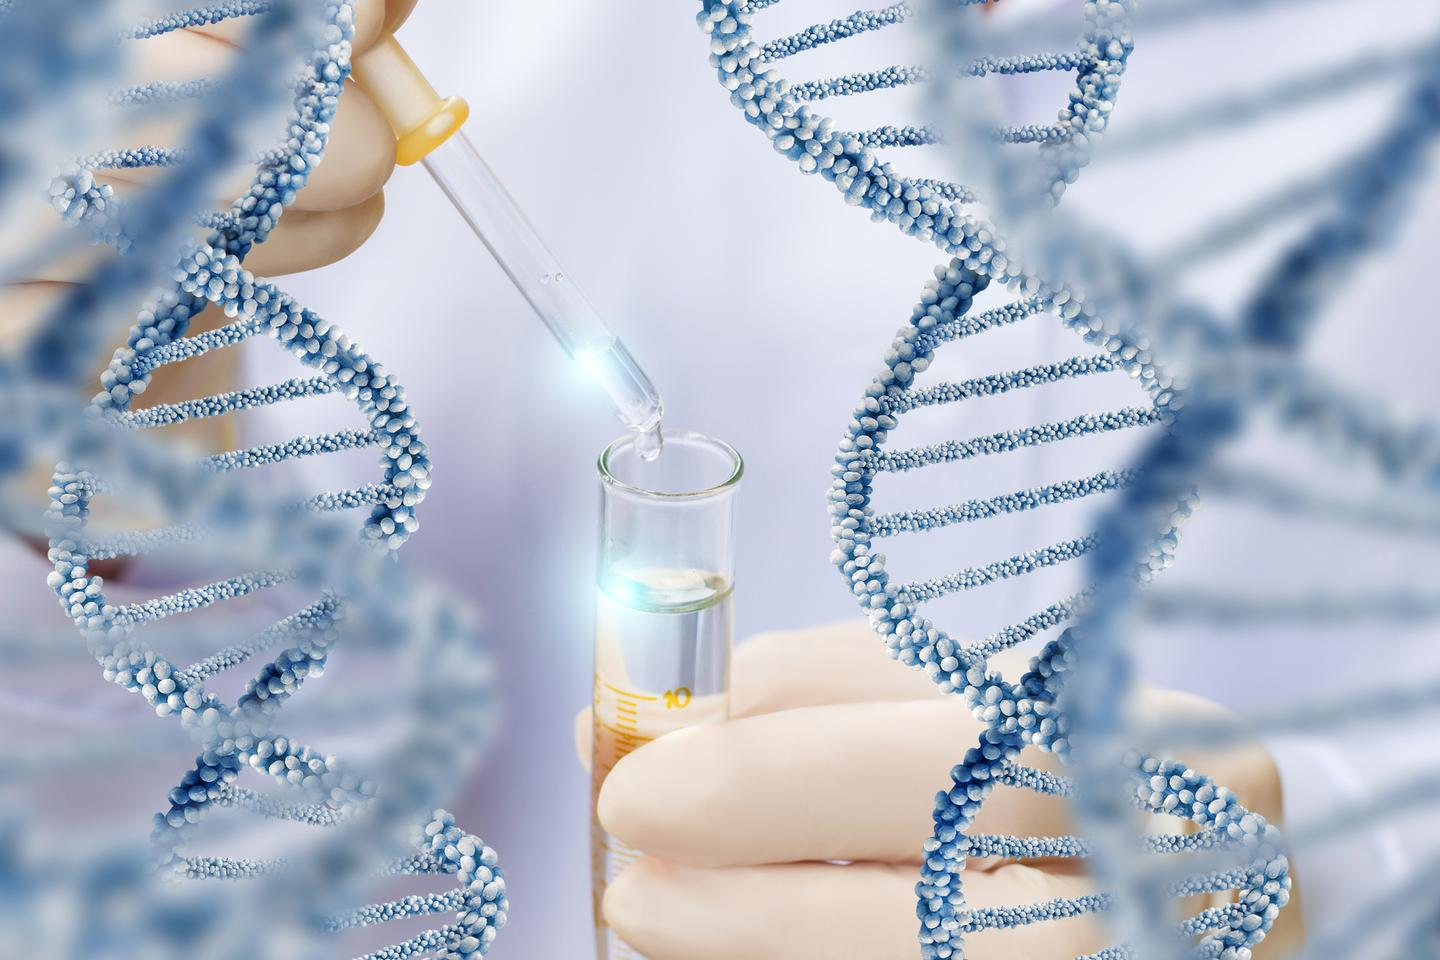 The first, promising results have been released from a phase 1 clinical trial using CRISPR to treat a genetic disease